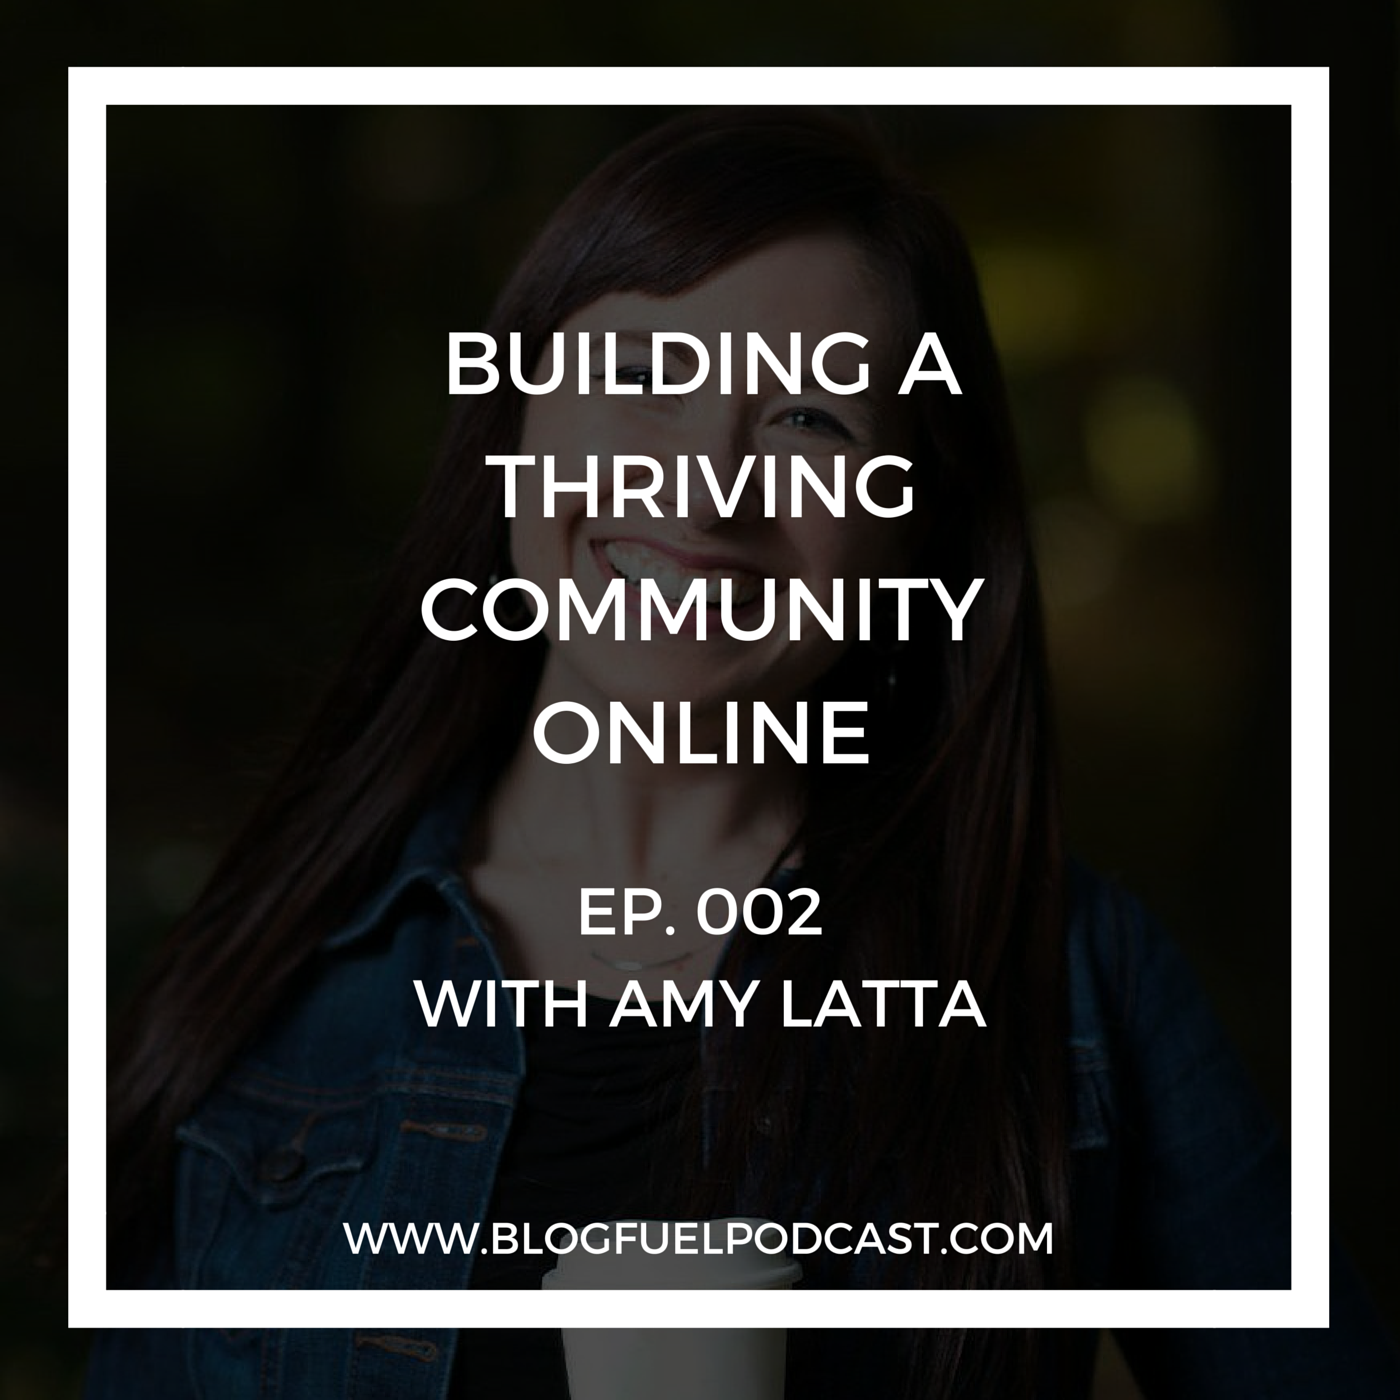 With the ever-changing algorithms on social media, it's increasingly more difficult to develop a community of readers online. In the Blog Fuel podcast Ep. 002, Amy Latta of One Artsy Mama shares how she has created her community and how she consistently fosters engagement with her readers.